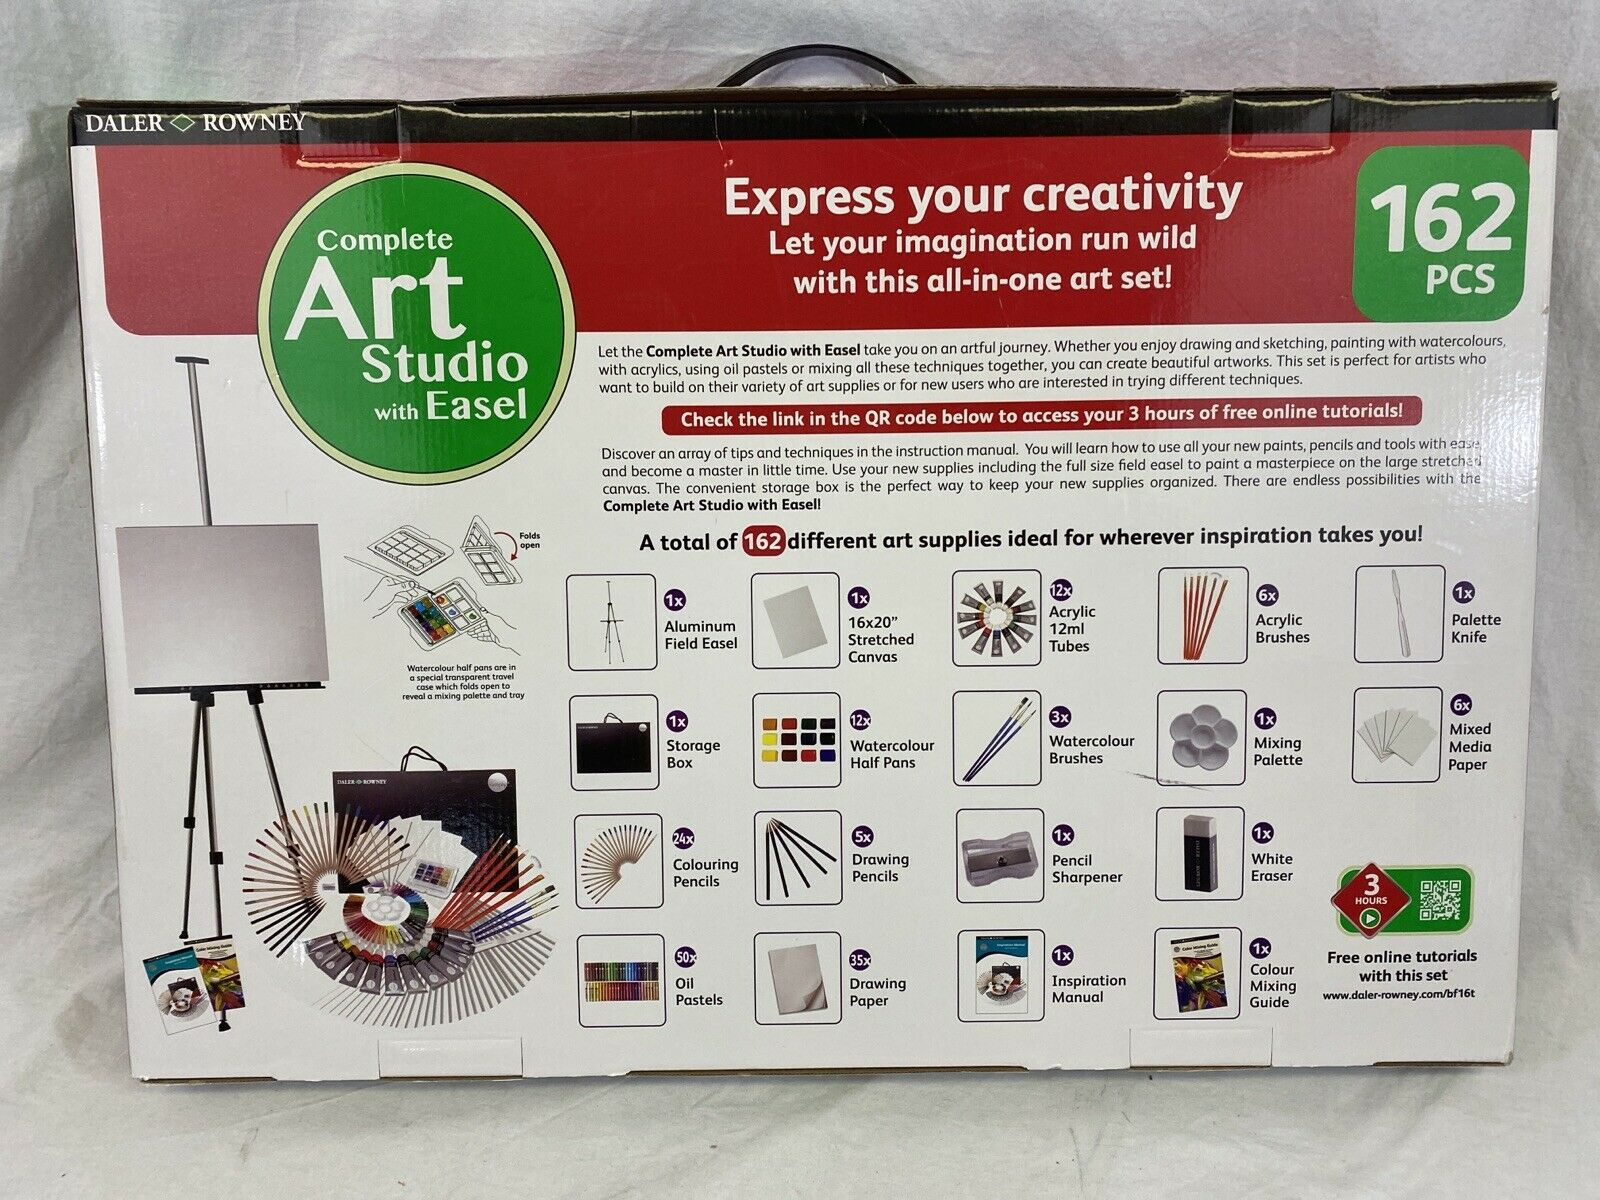 Kit Daler Rowney 111 Piece All Media Art Studio Paint Set with Easel Canvas